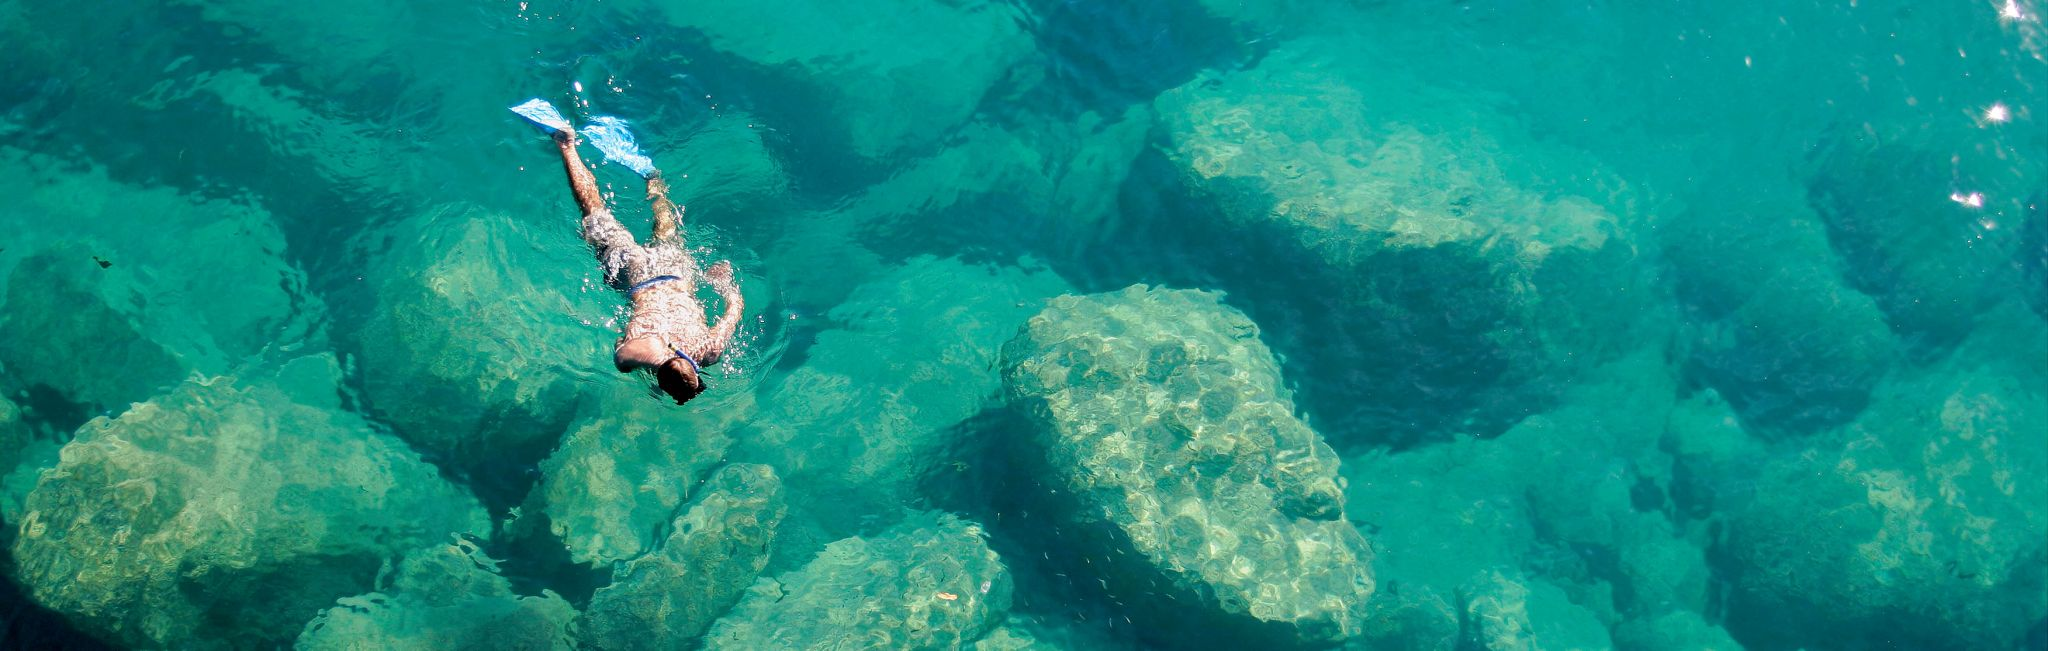 A snorkler in the clear waters of Lake Malawi.